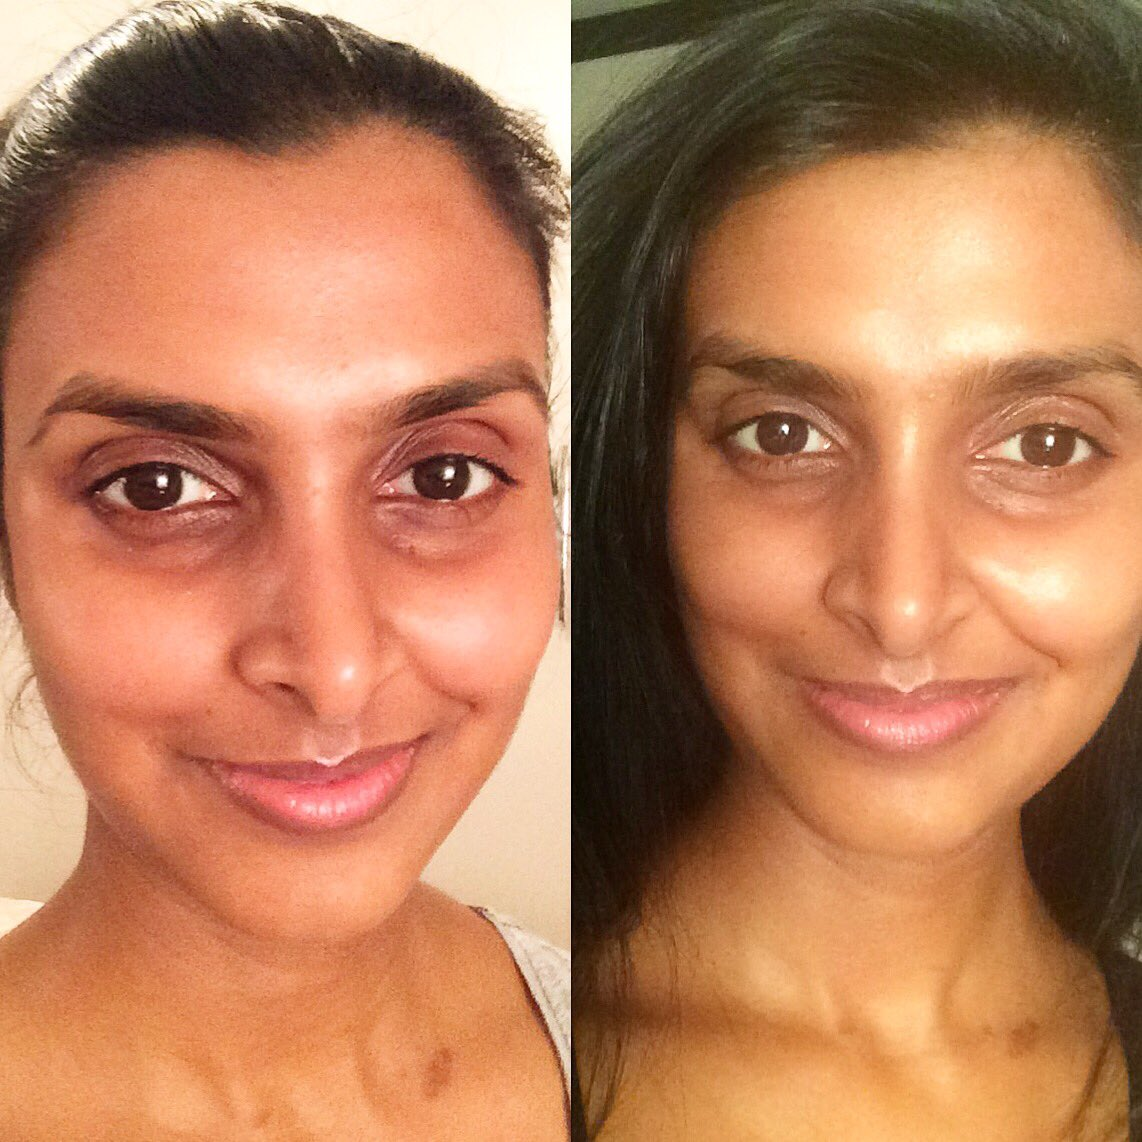 RT @JaineeshaPatel: @CTilburyMakeup you are a magician! Been using #magiceyerescue for 4 weeks and what a difference!!!! Thank you! https:/…